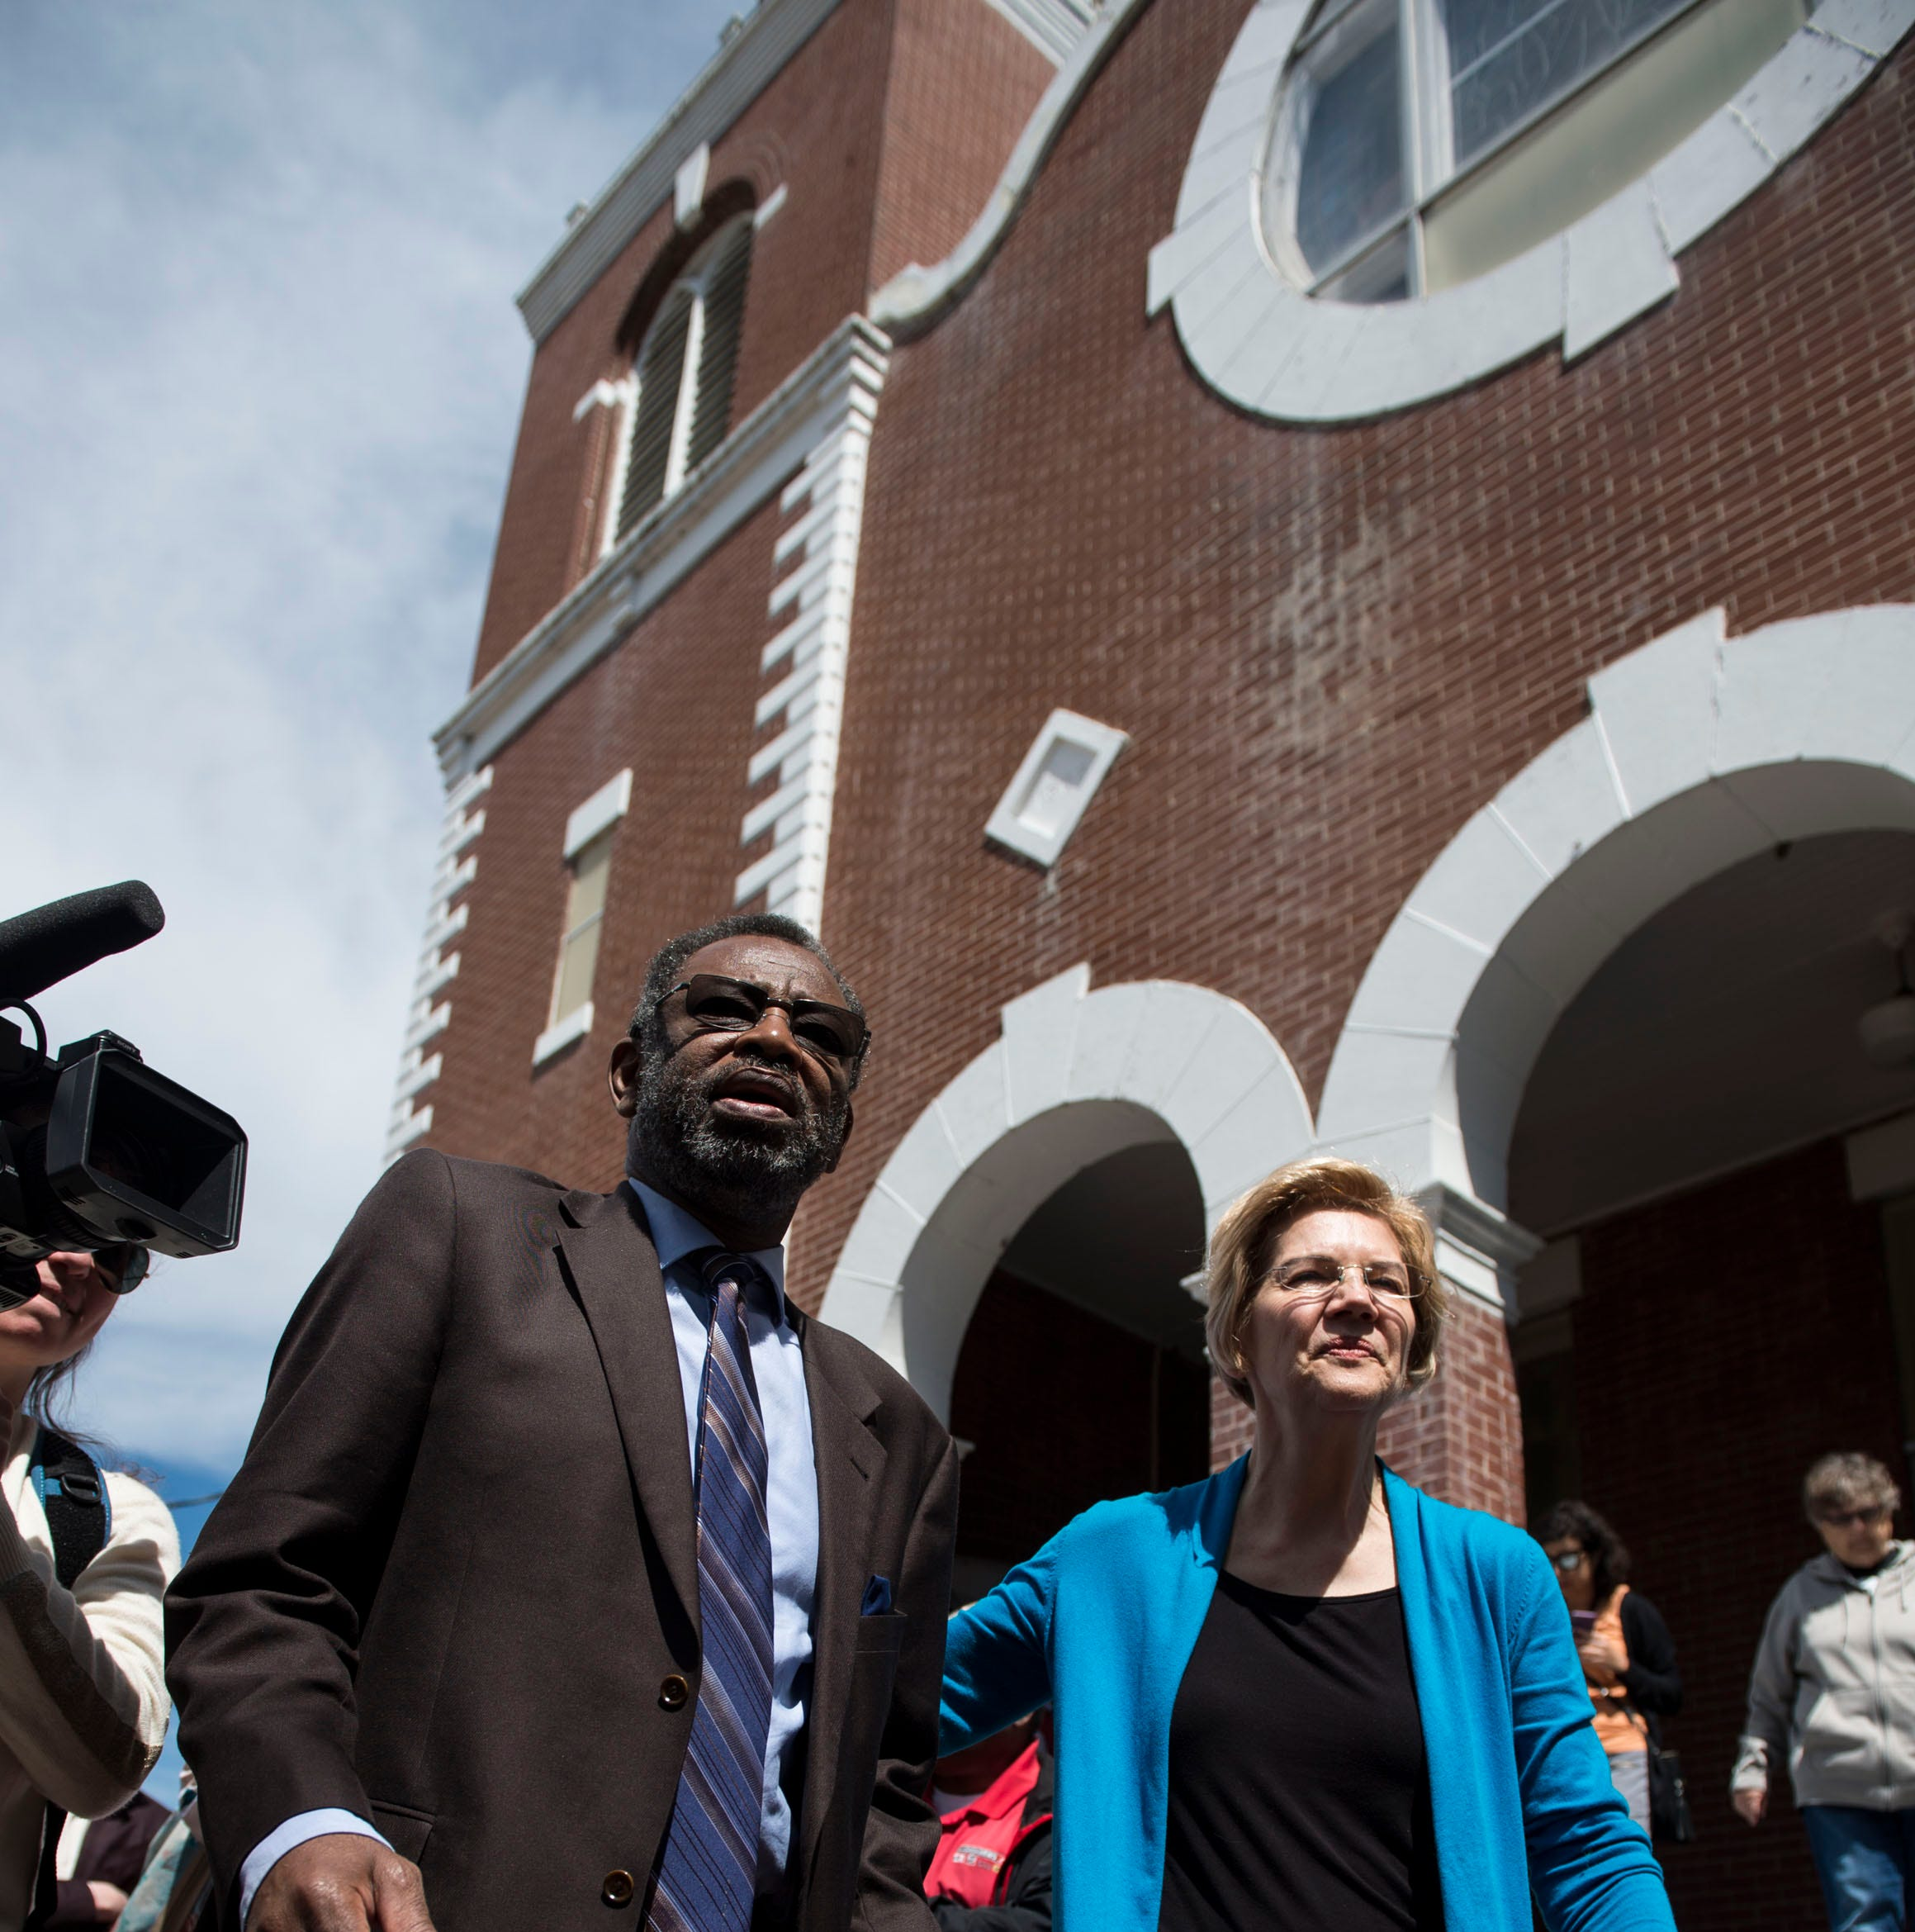 Elizabeth Warren talks housing, voting rights, and more in Selma visit